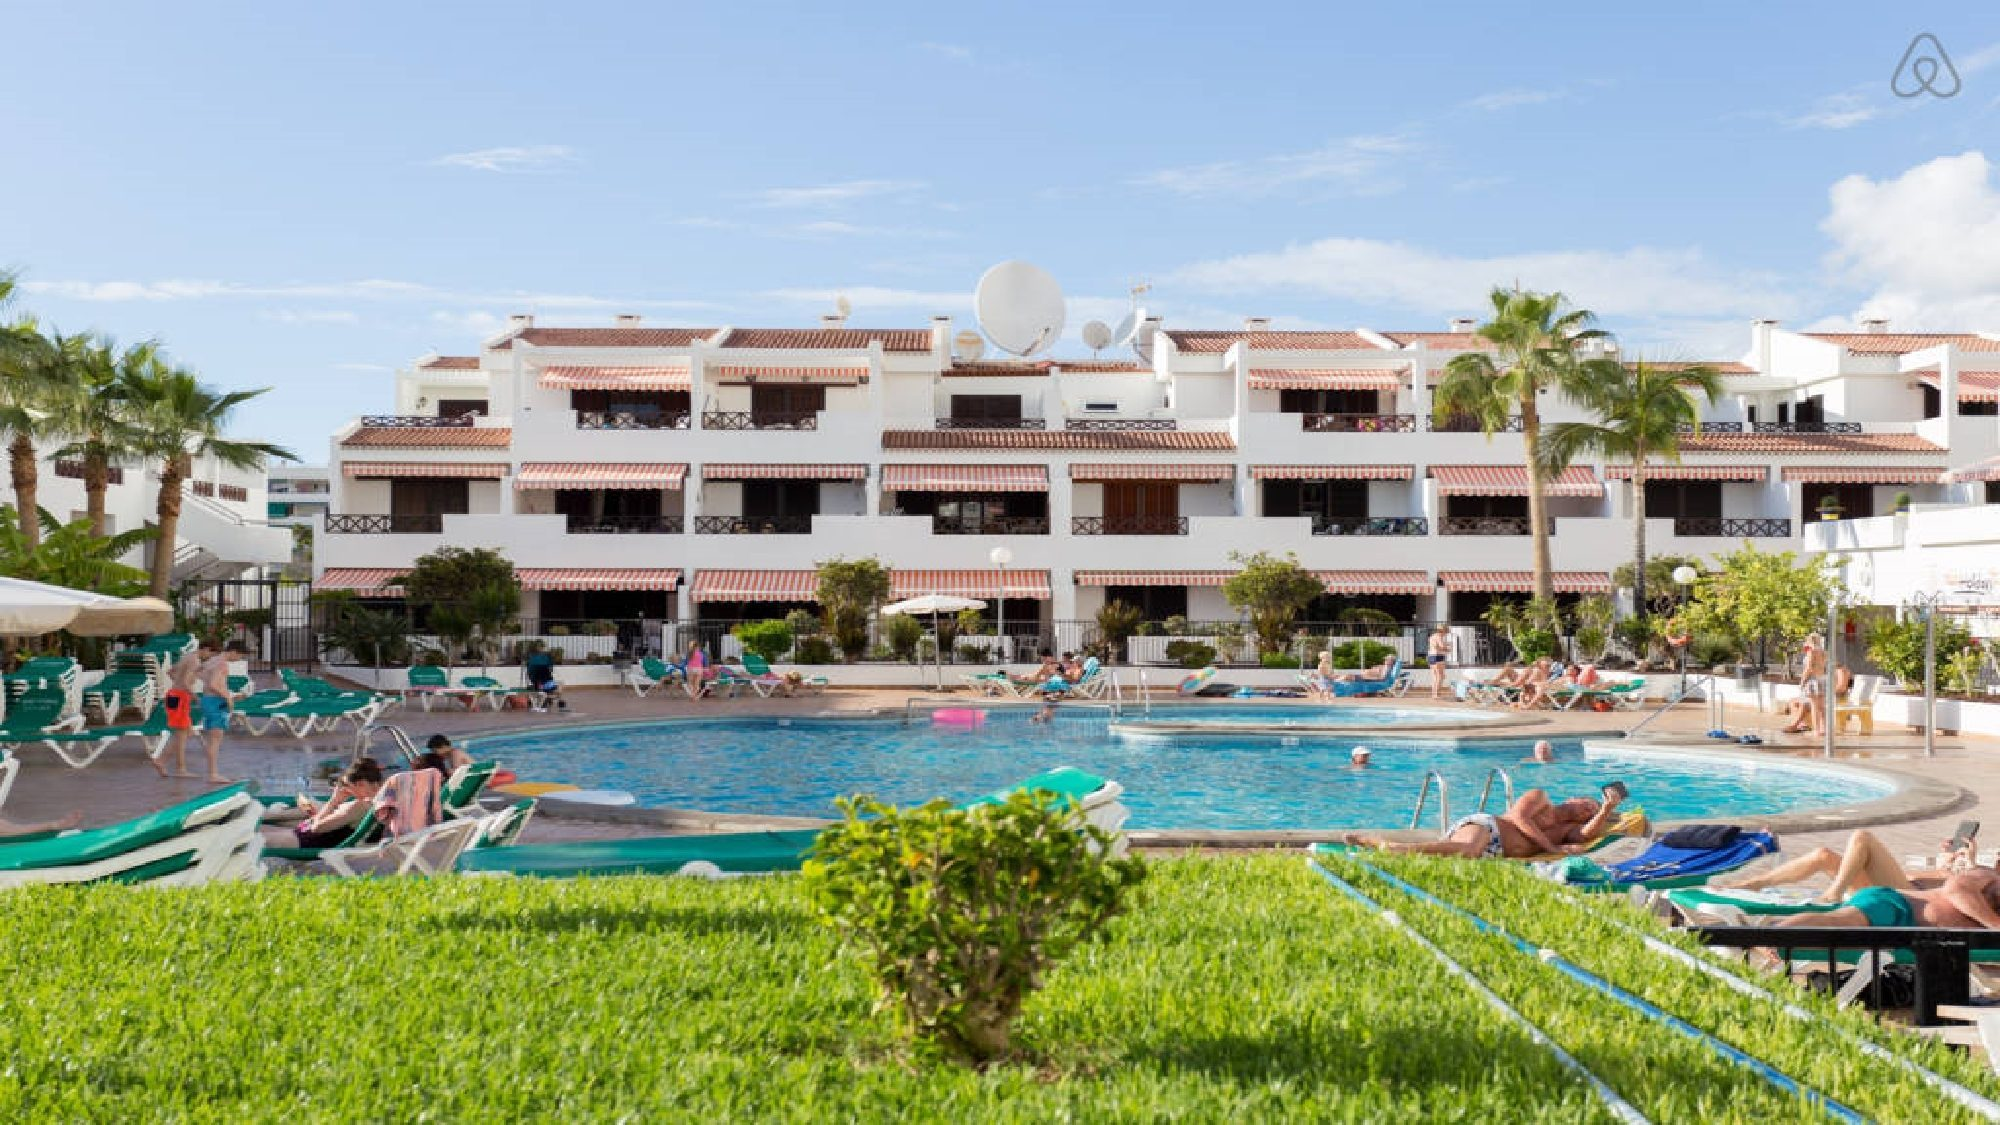 Apartment In Tenerife To Rent Heated Pool 3 Bedrooms Los Cristianos